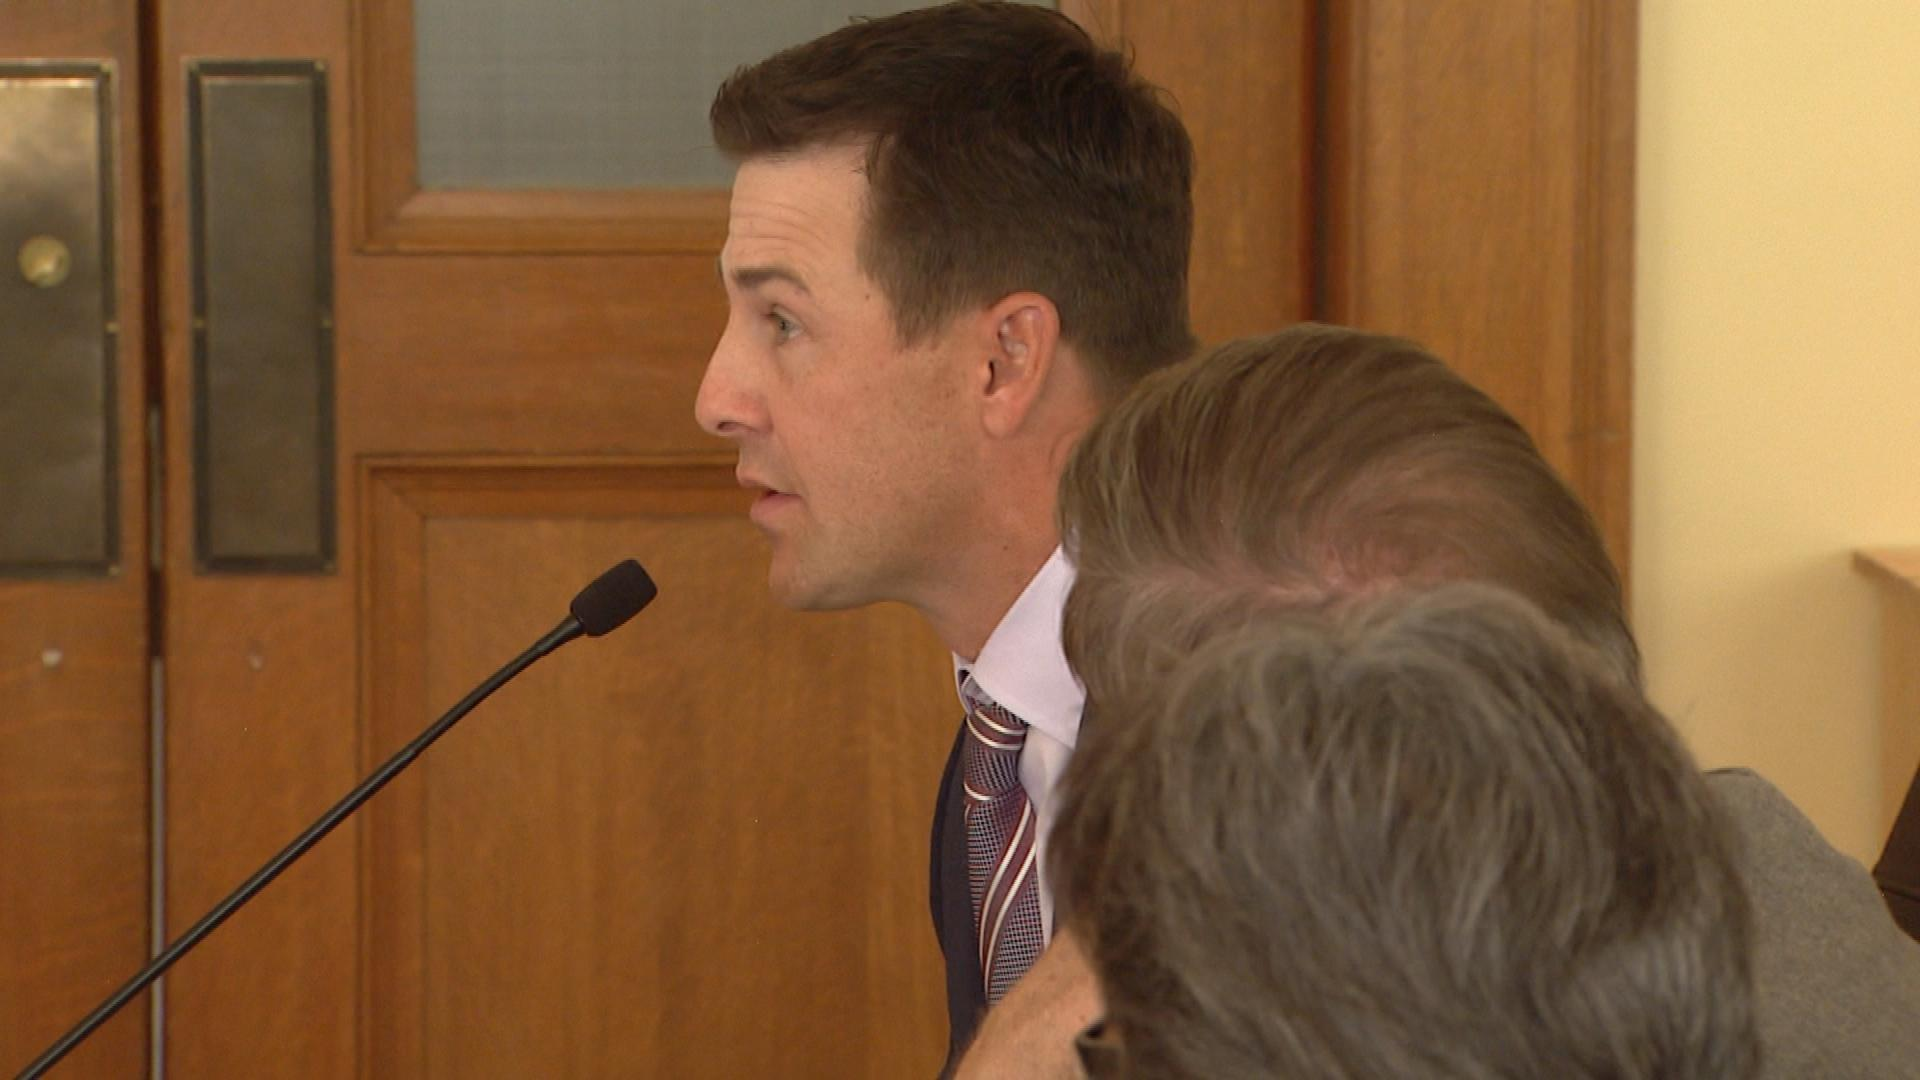 Brandon Stokley at the state Capitol on Tuesday (credit: CBS)